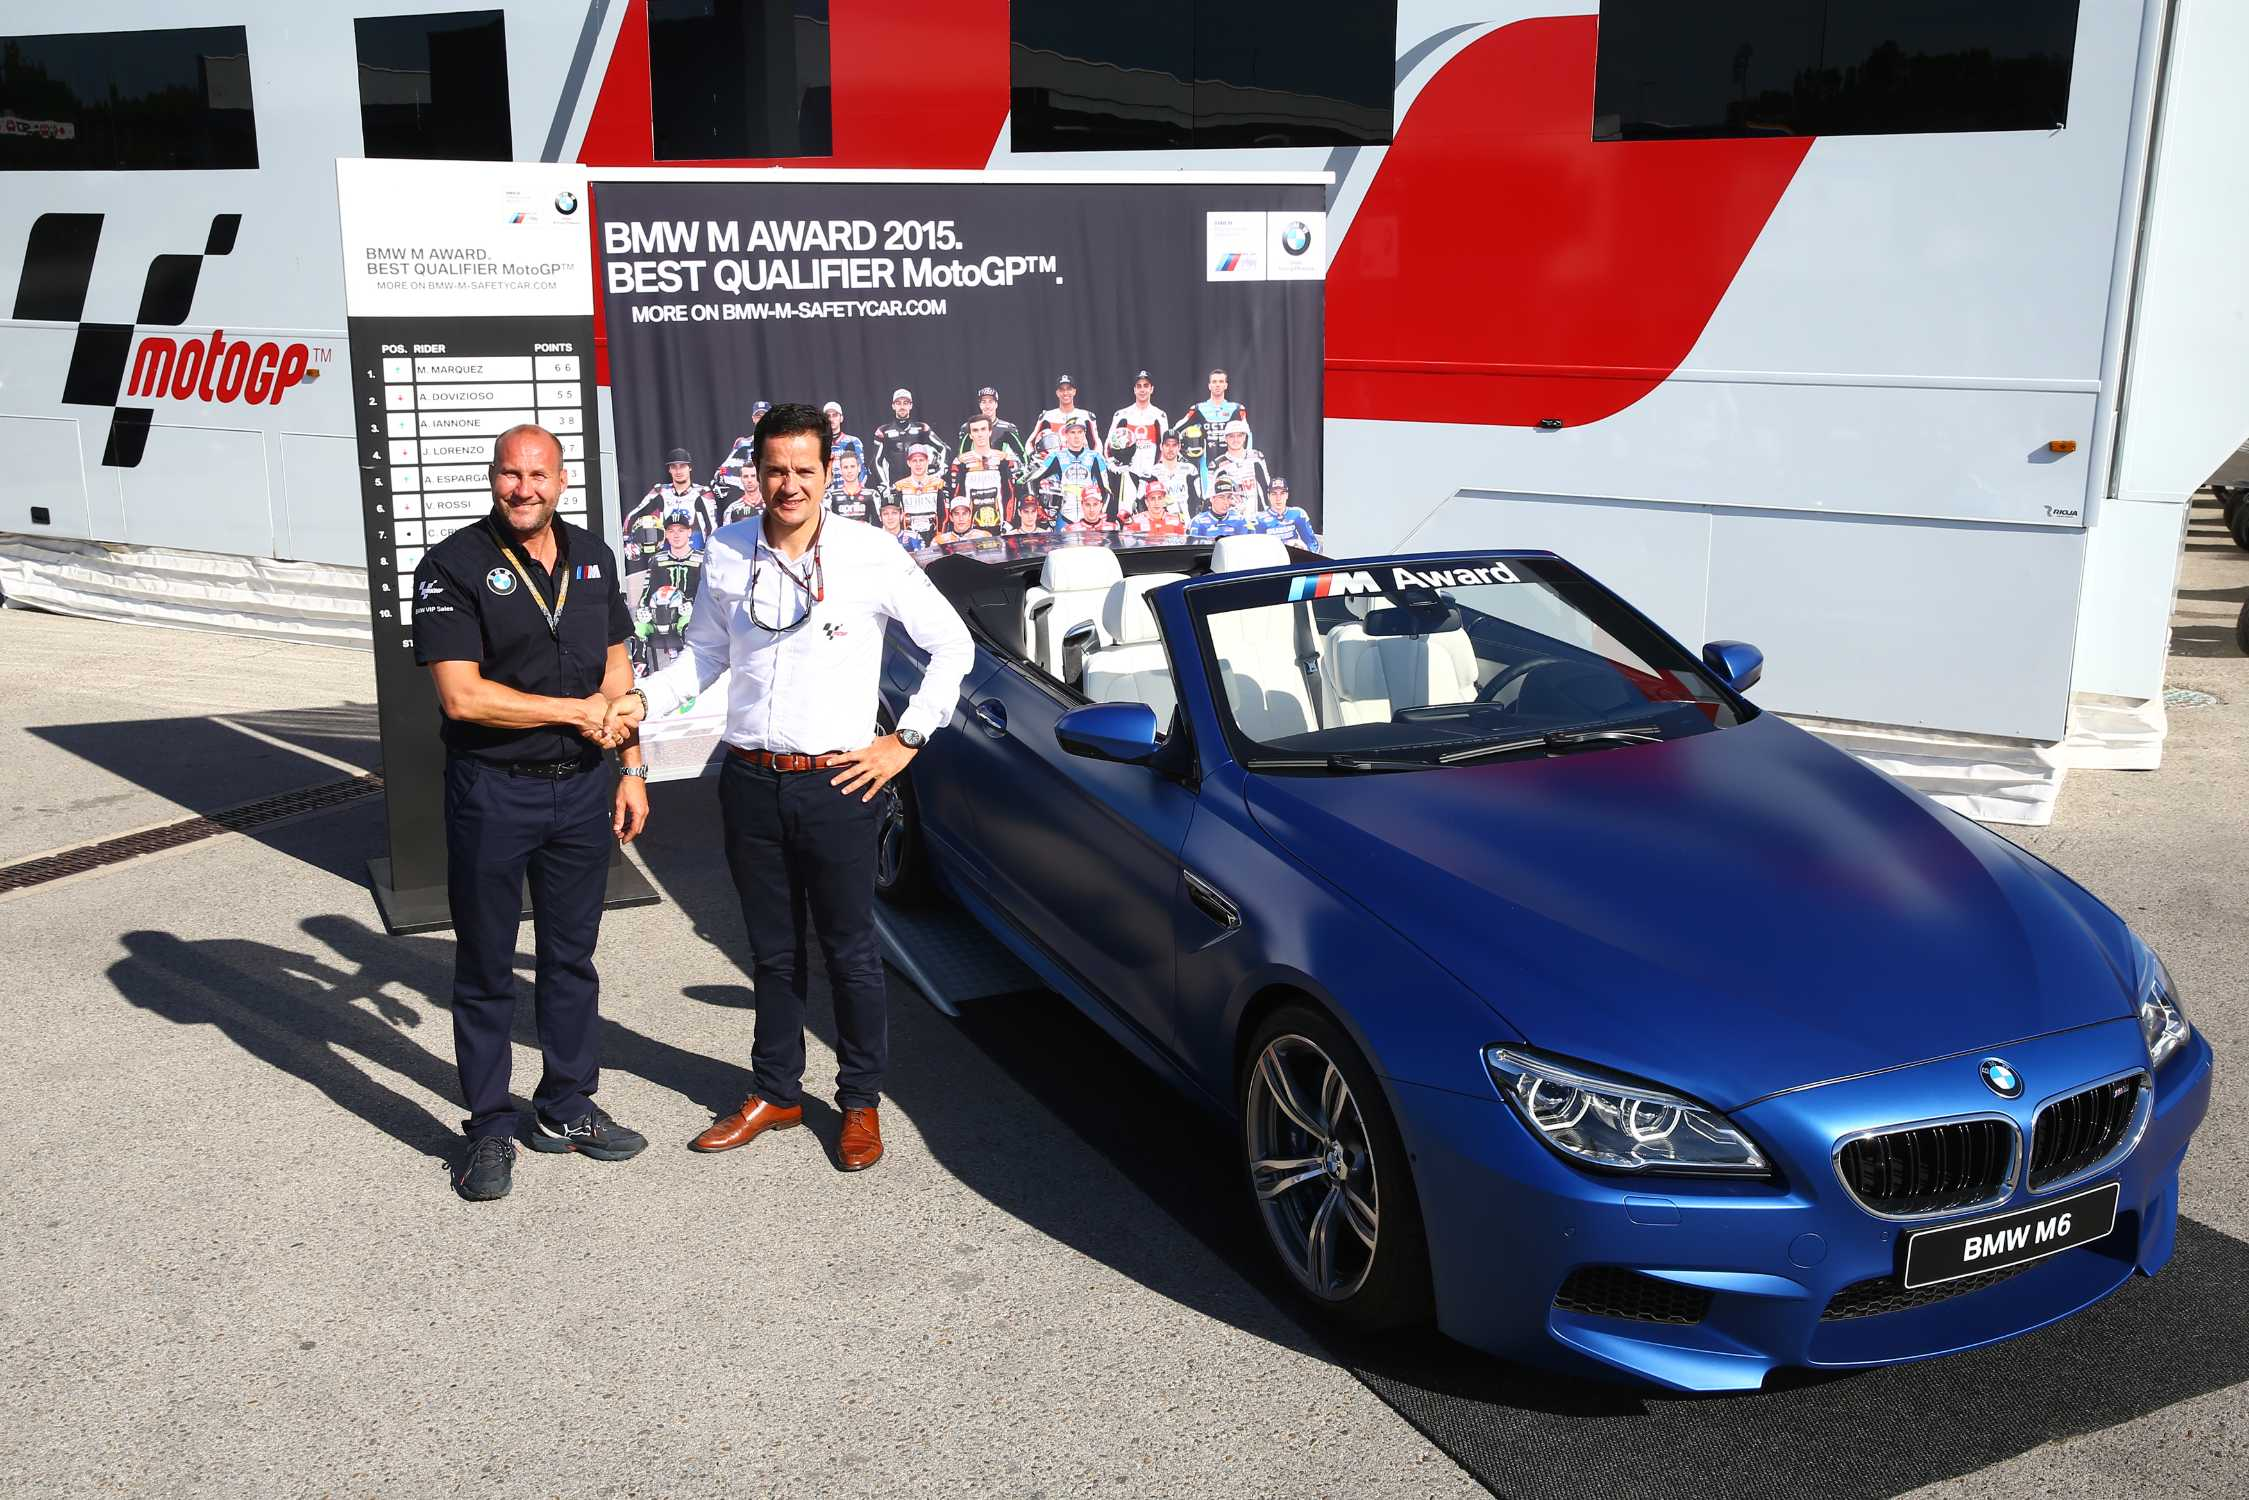 Bmw M Award 2015 An Exclusive Bmw M6 Convertible For The Top Motogp Qualifier